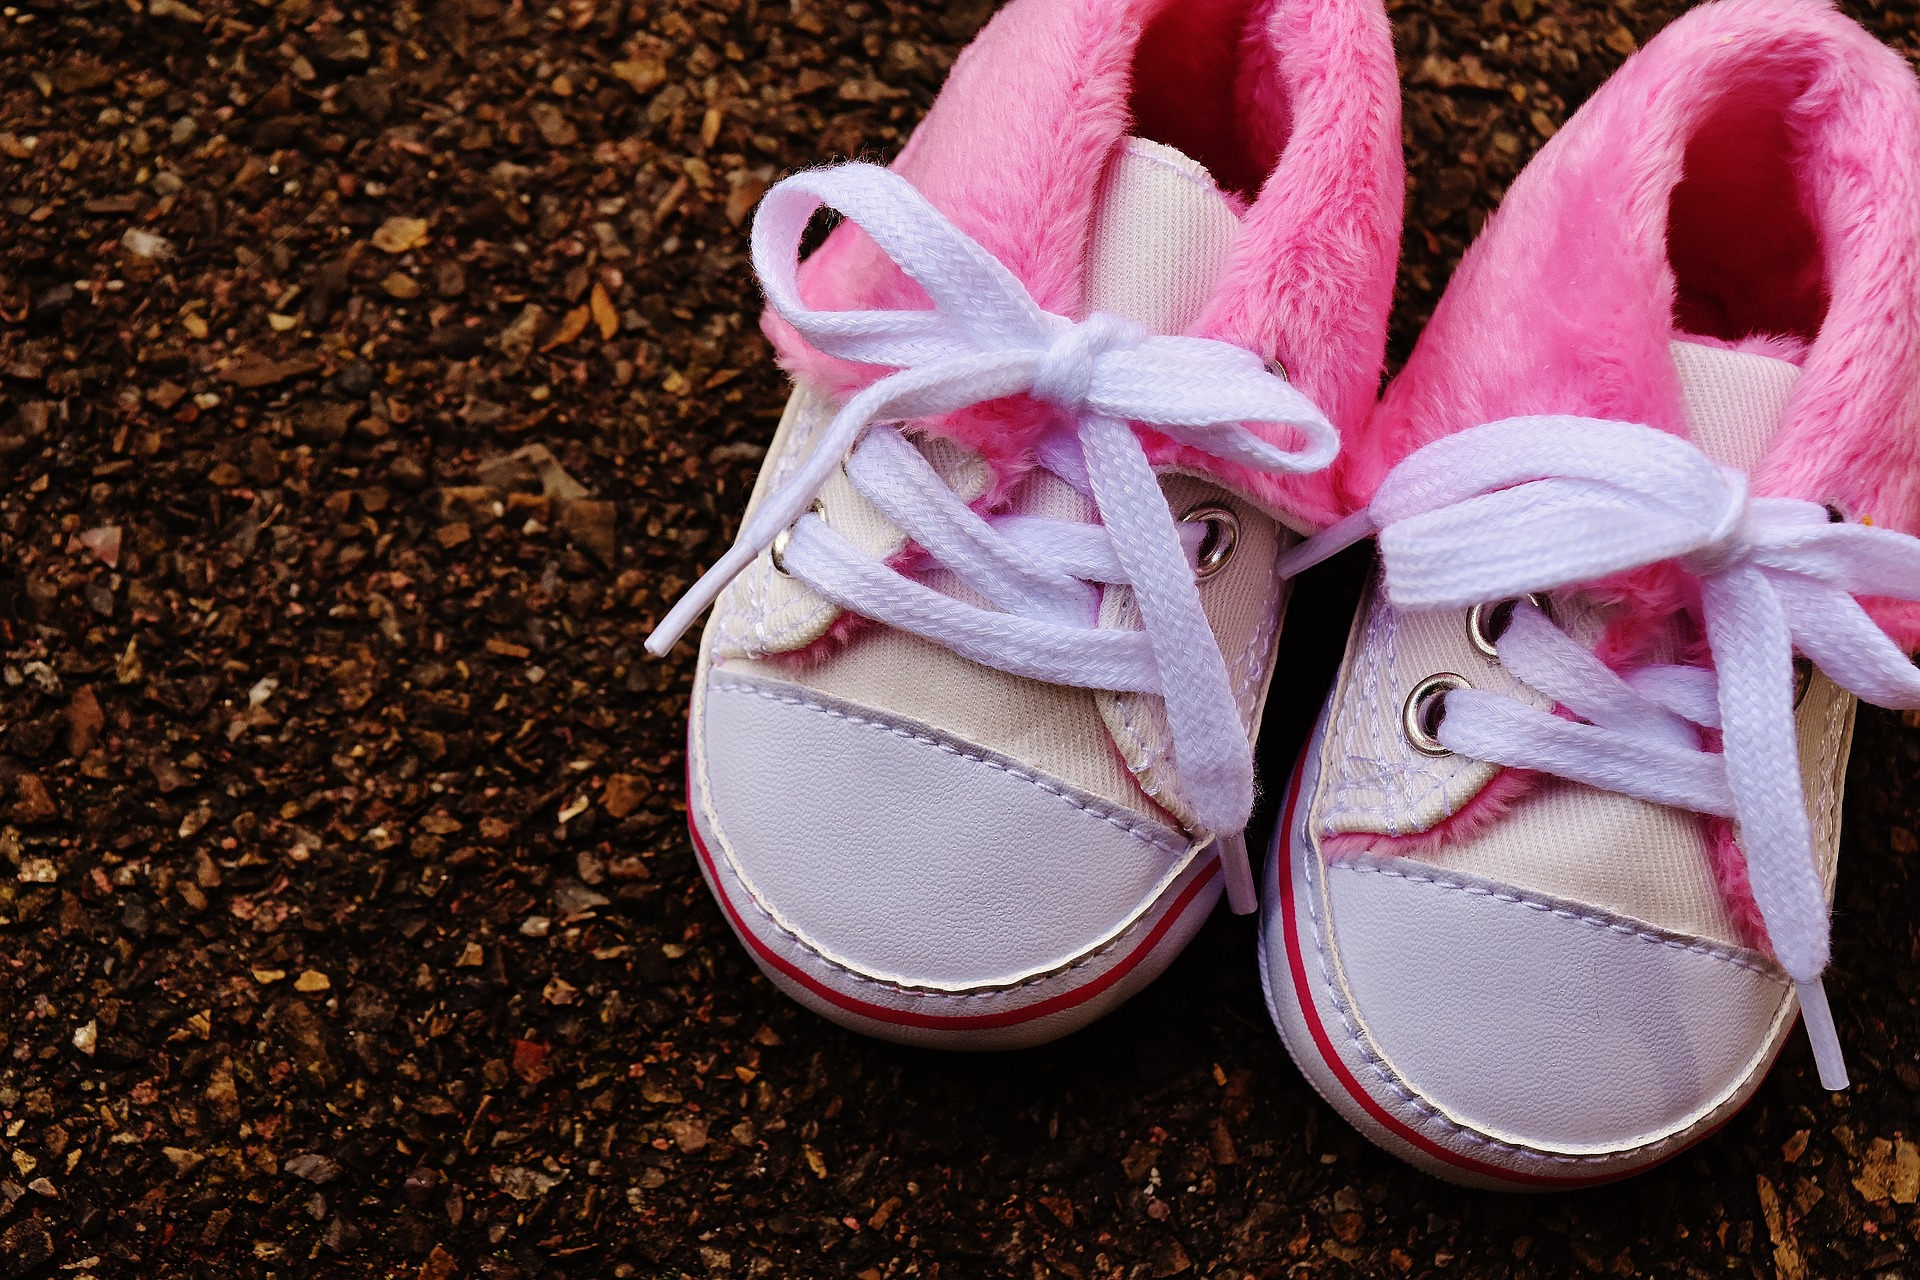 Choosing the Right Shoes for Children